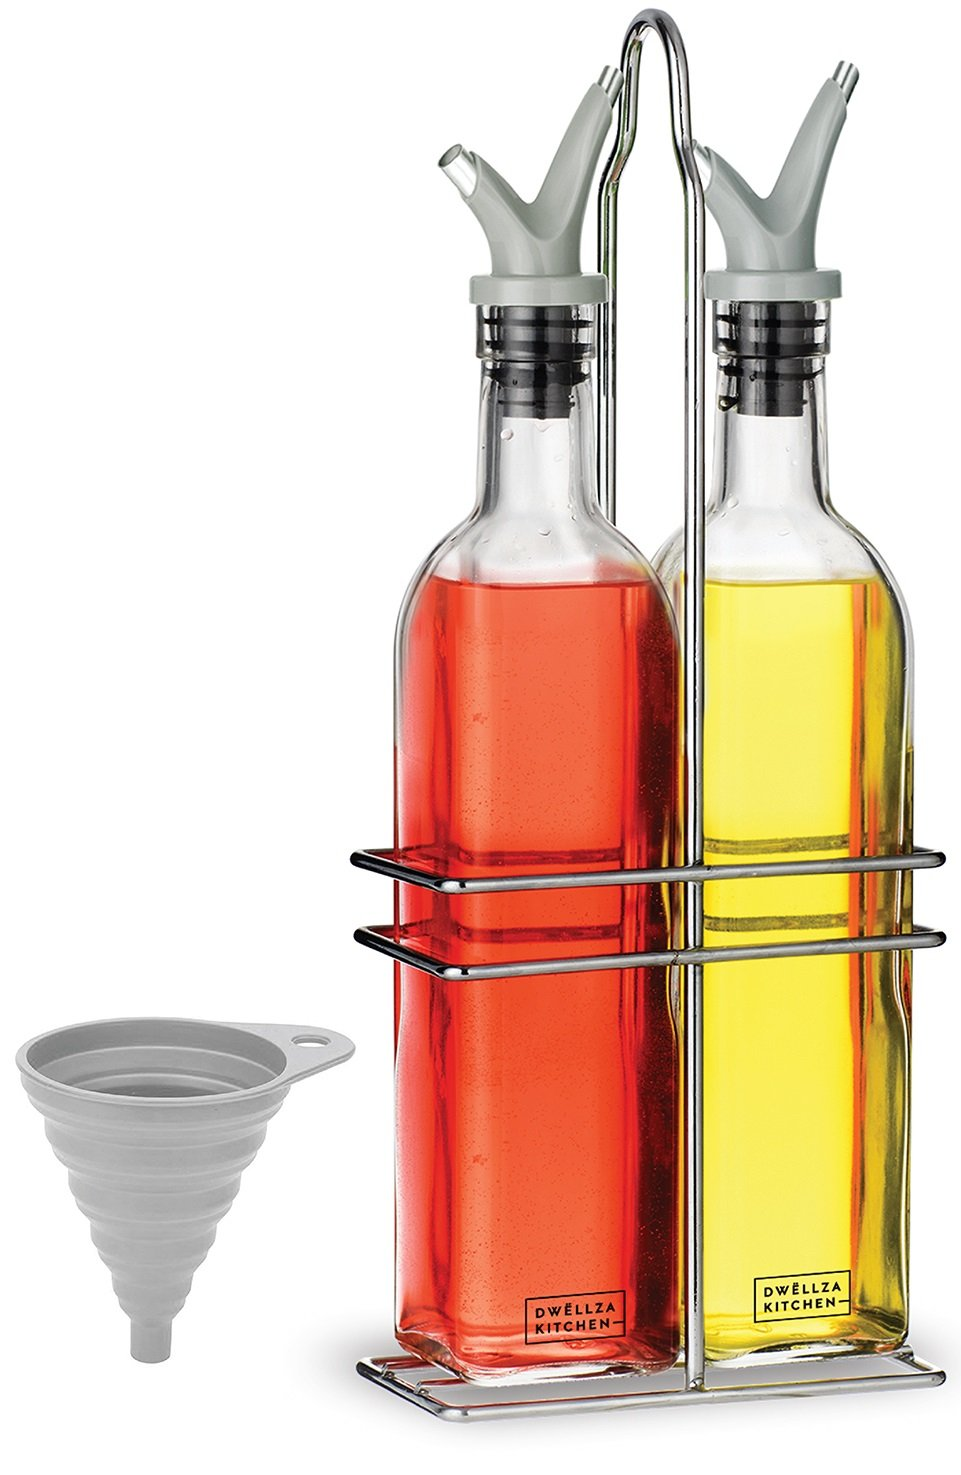 Dwellza Kitchen Glass Olive Oil and Vinegar Dispenser Set with FREE Collapsible Silicone Funnel | No-Drip Double Spouts | Dishwasher-Safe Bottles and Stainless Steel Holder in Break-Free Packaging